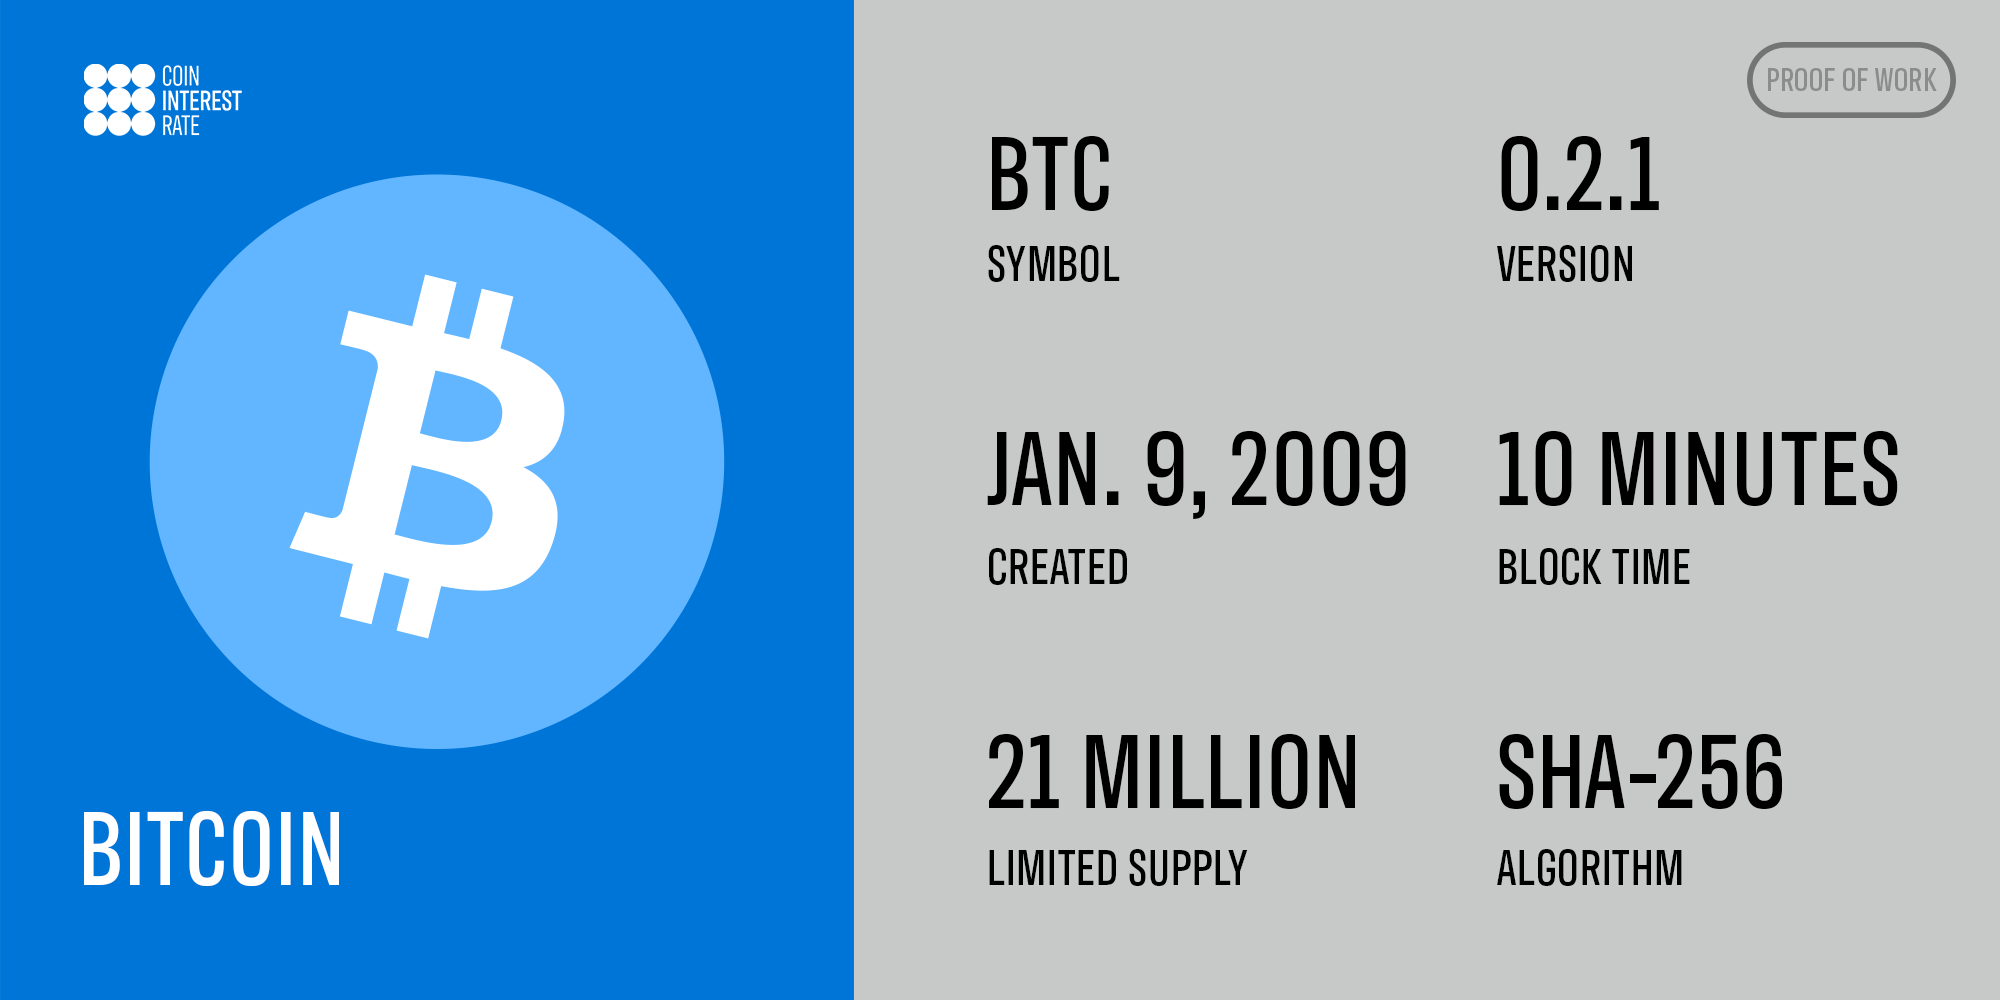 Bitcoin stats (symbol, creation date, supply, version, block time and algorithm)